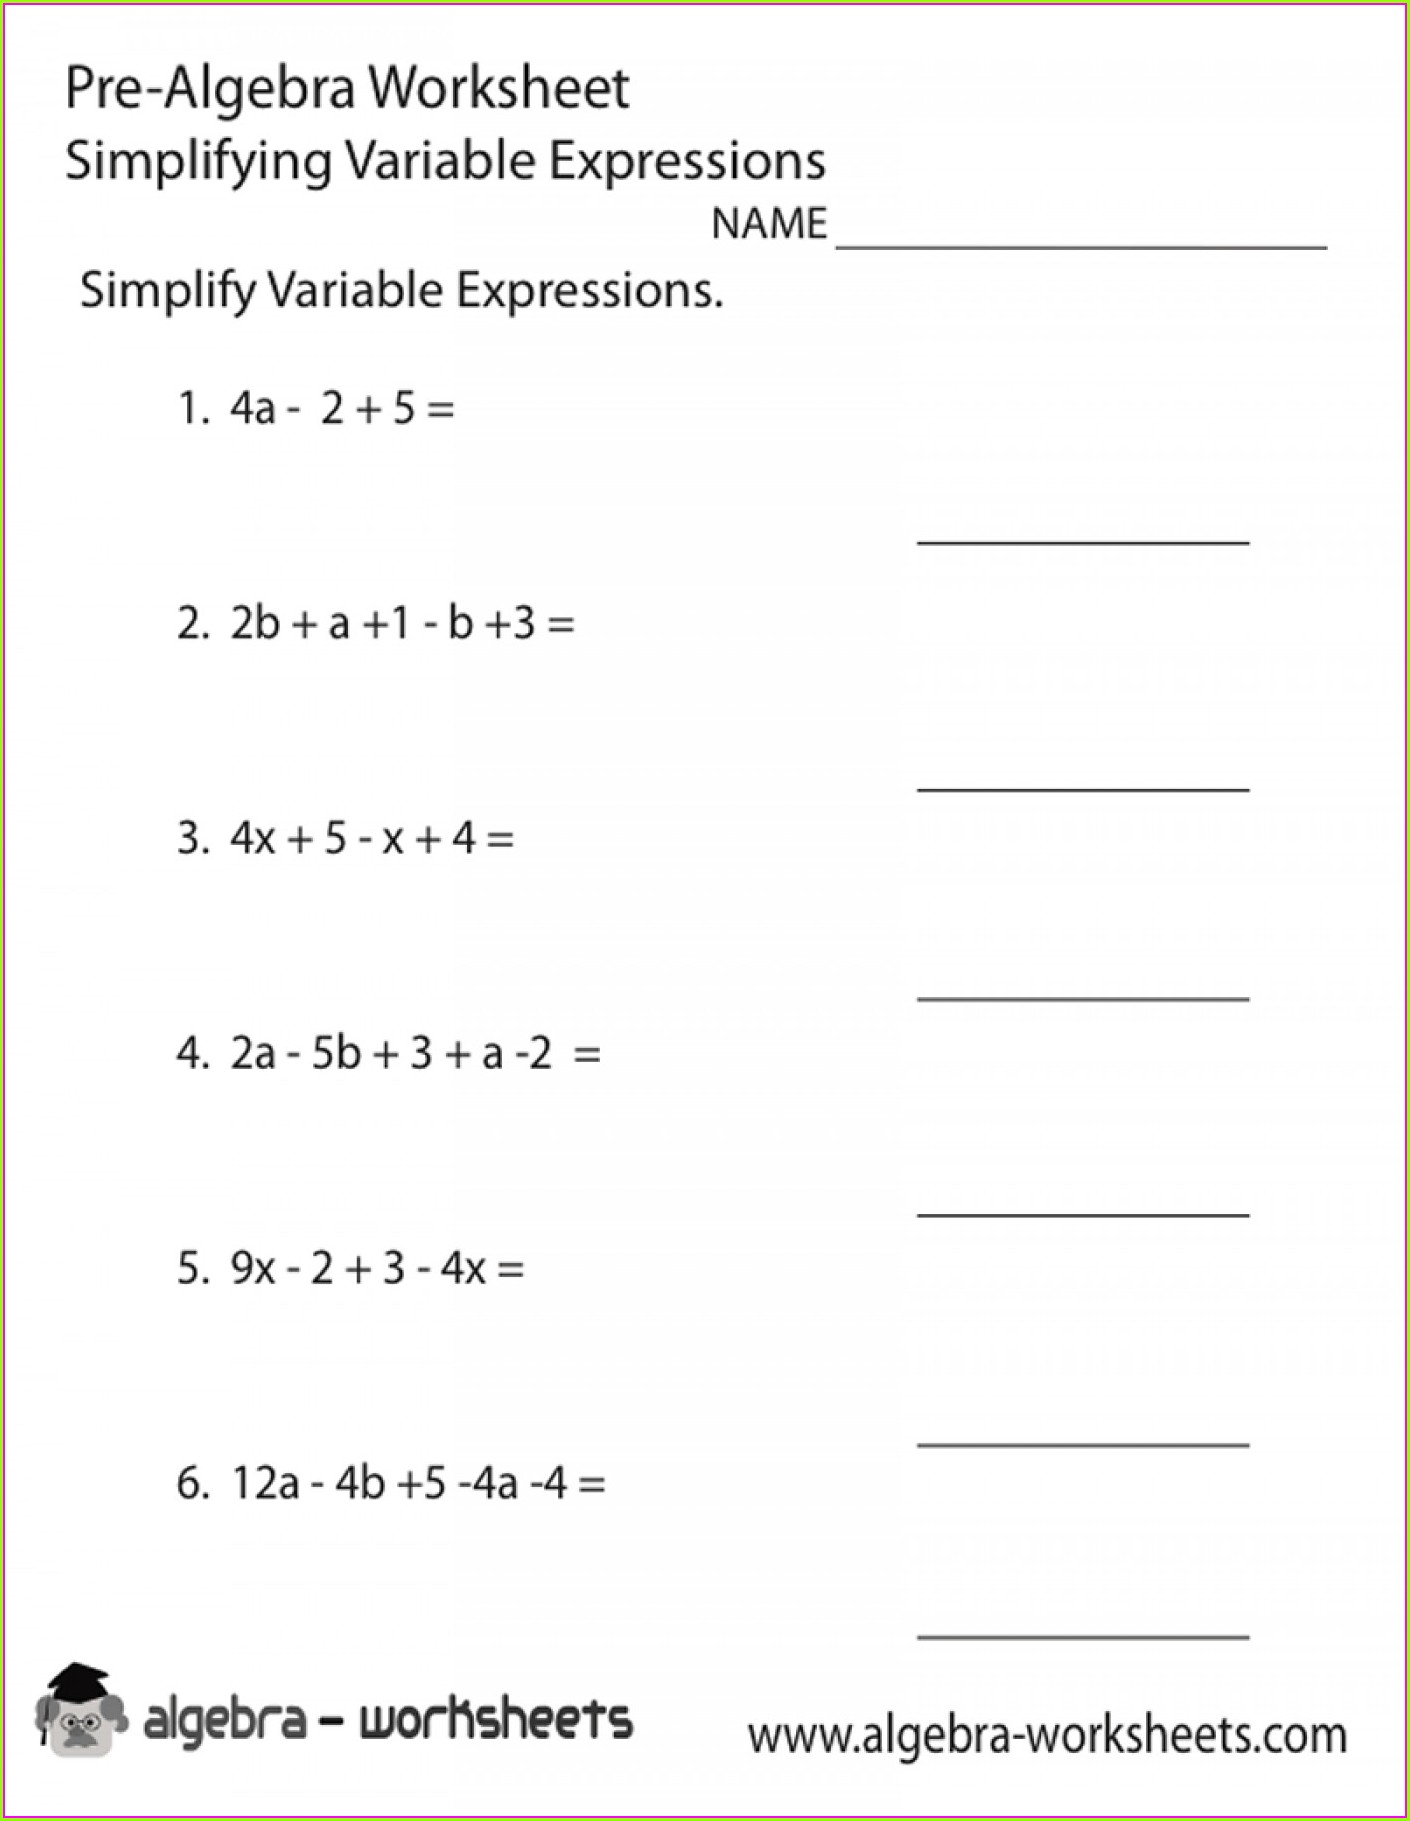 Writing Algebraic Expressions Worksheet Pdf